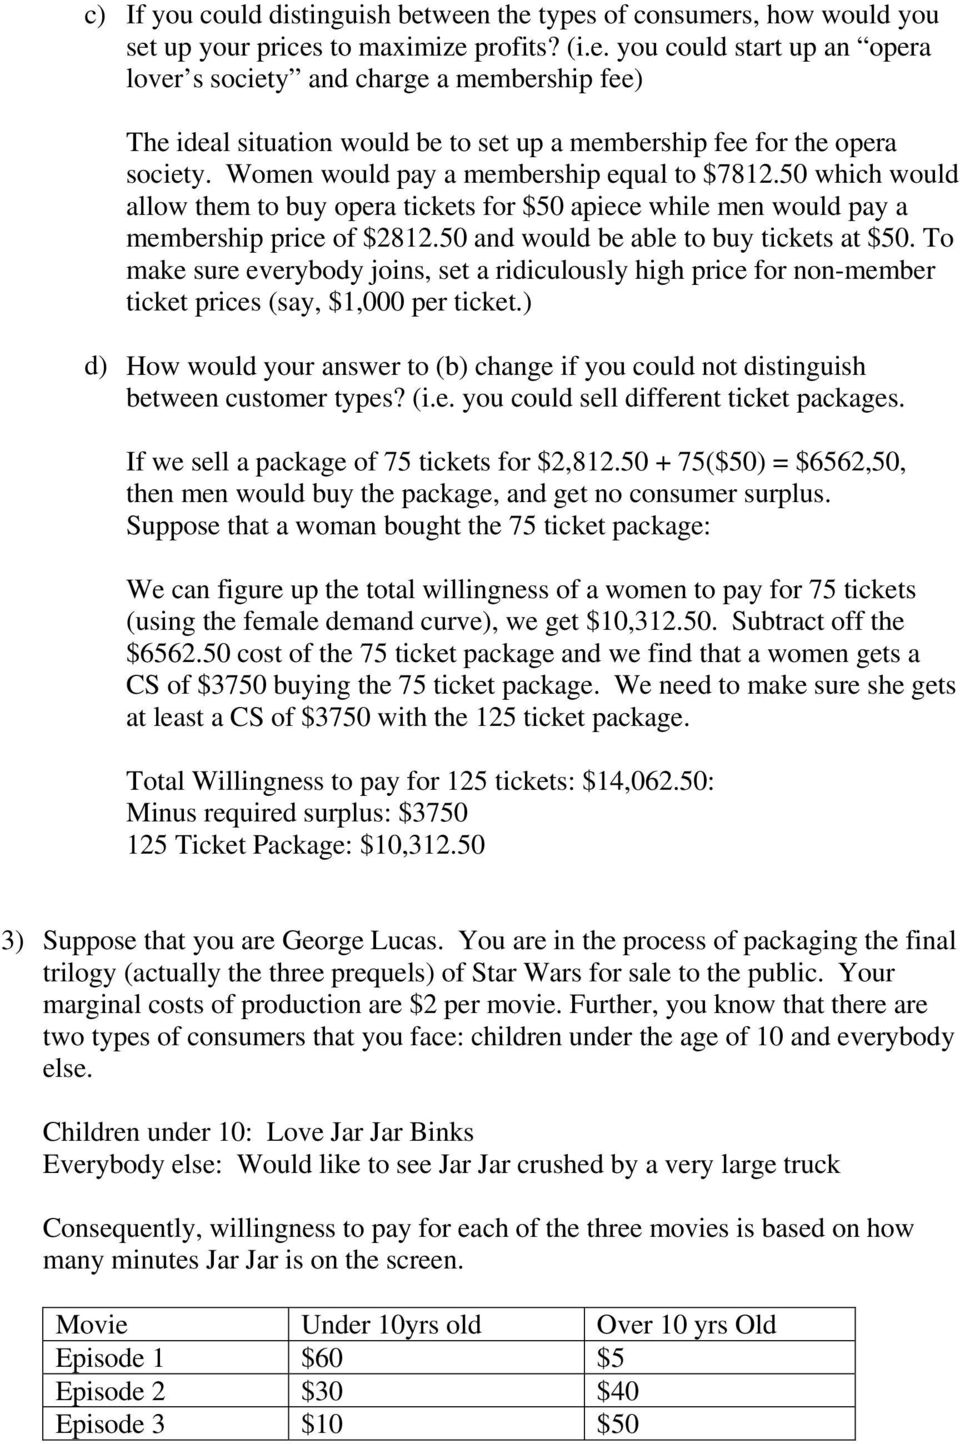 To make sure everybody joins, set a ridicuousy high price for non-member ticket prices (say, $1,000 per ticket.